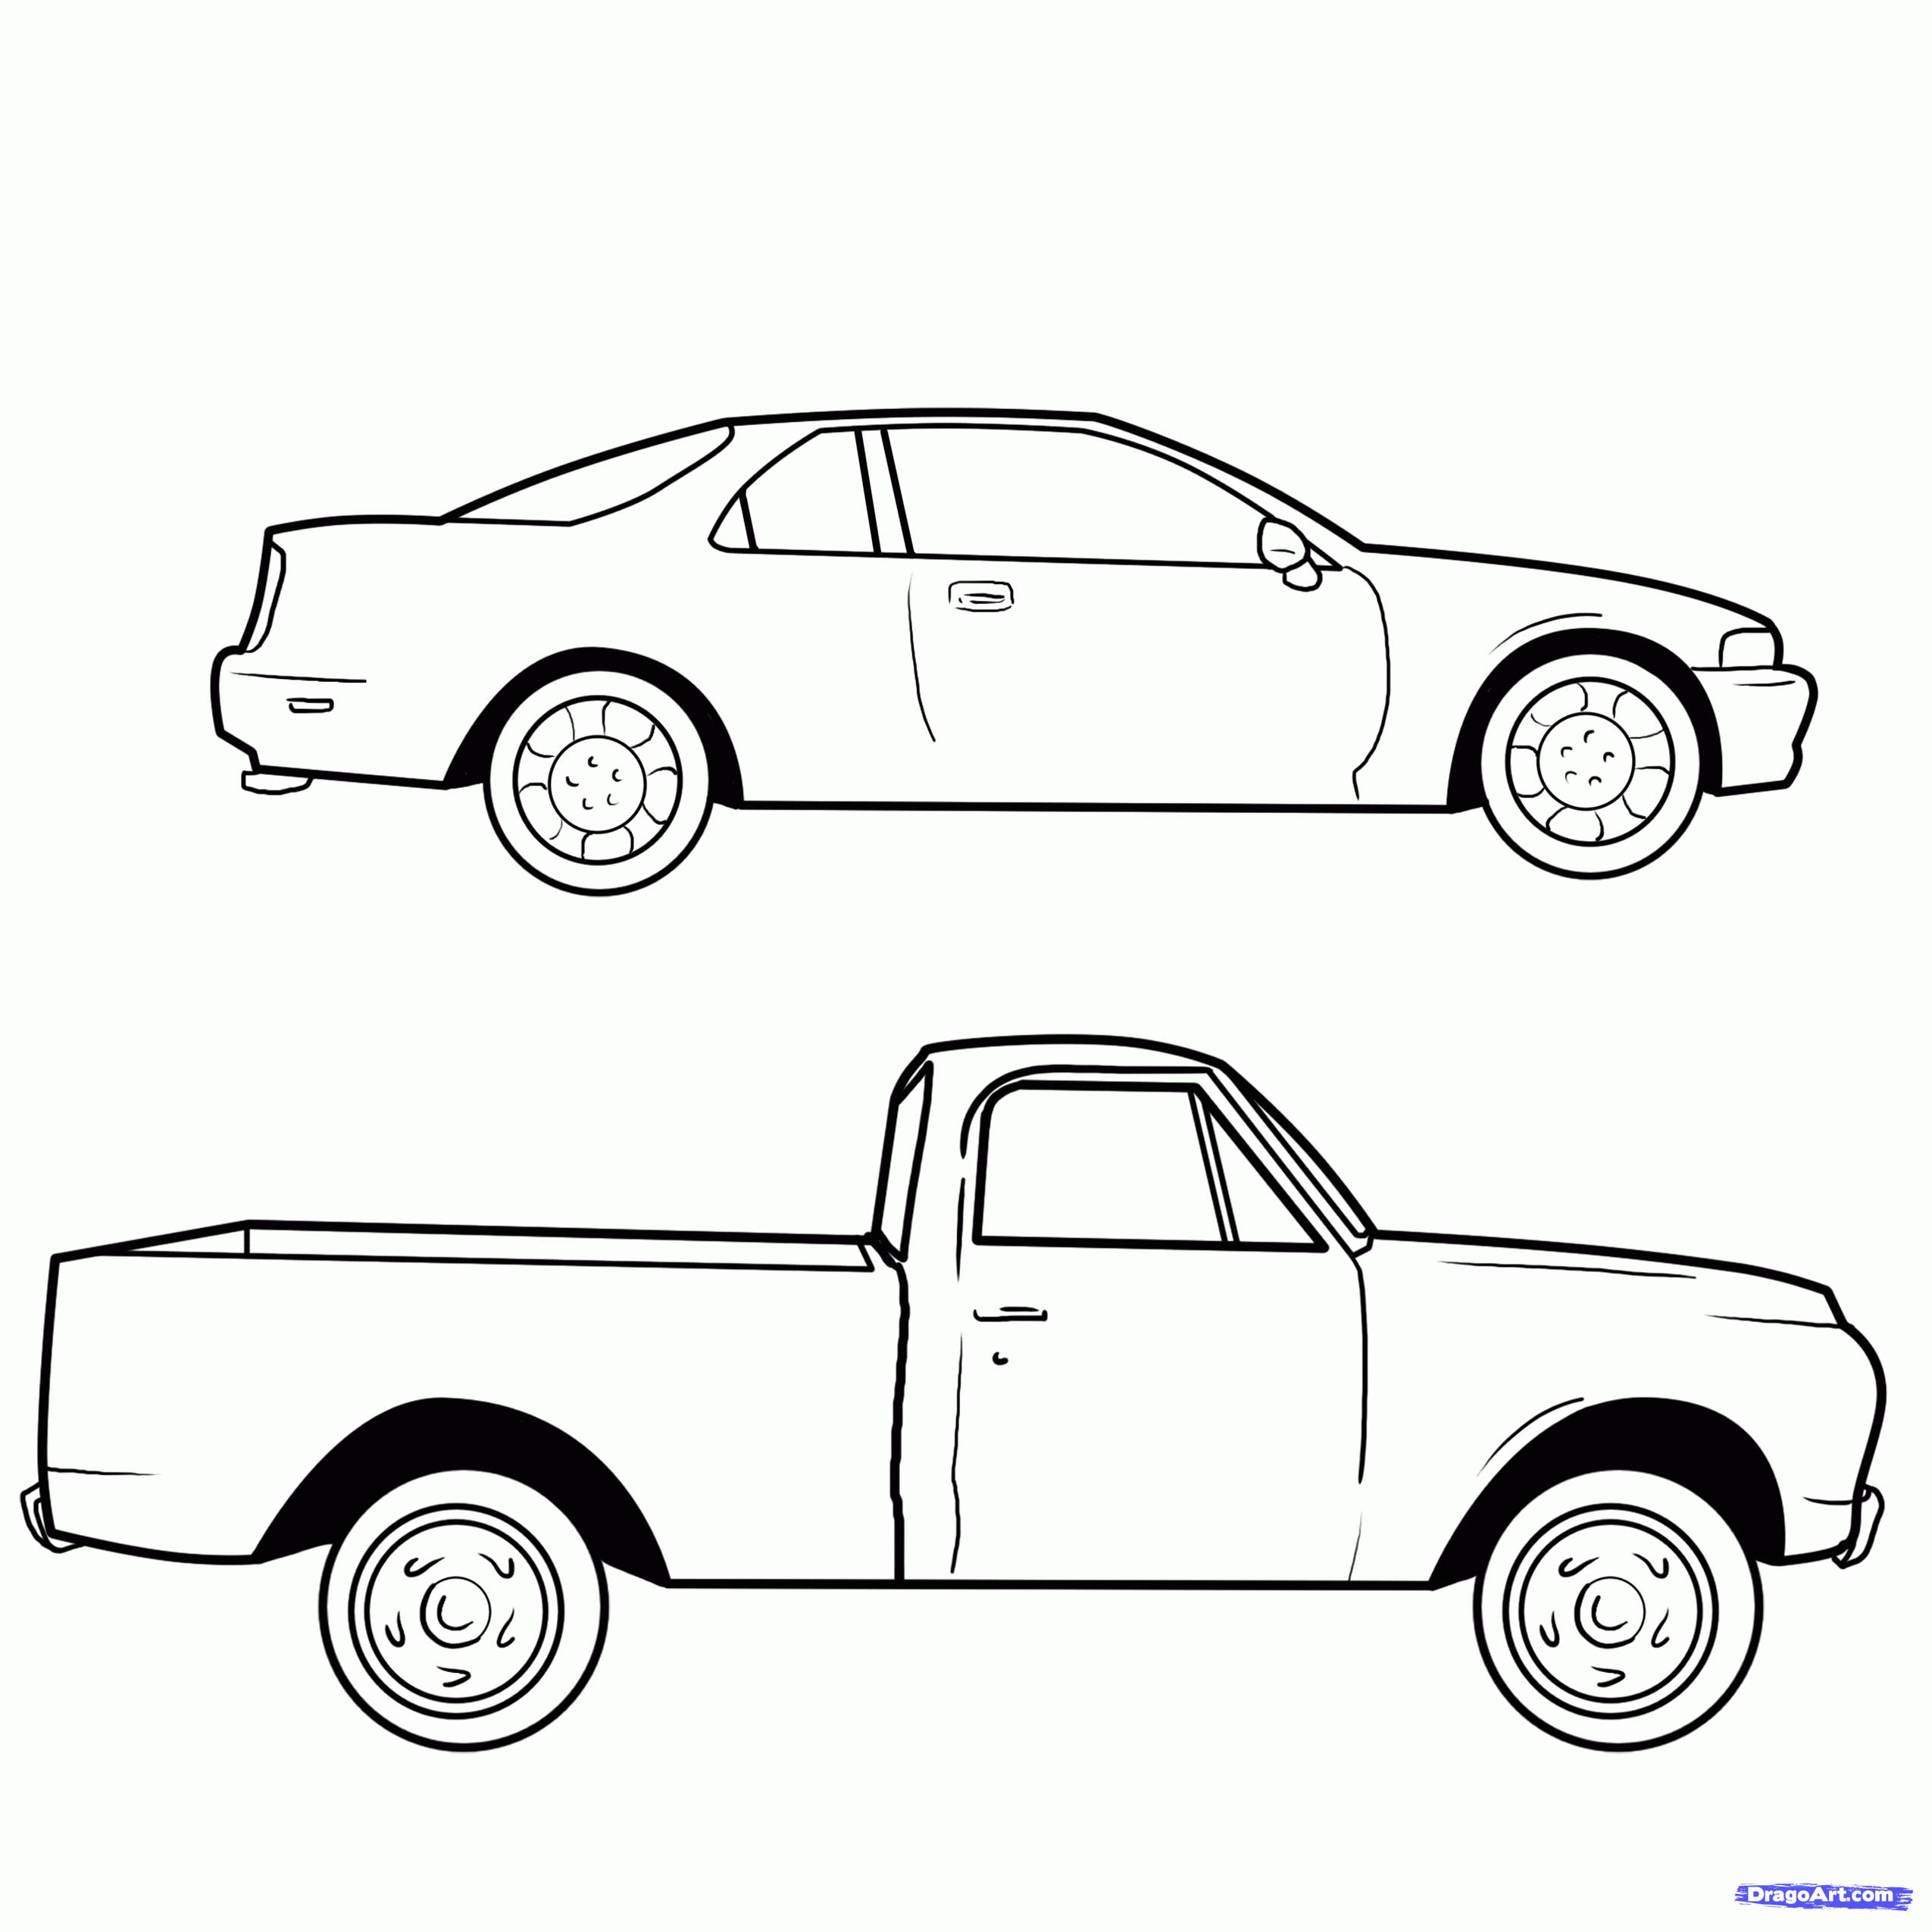 2550x2550 Gallery Drawings Of Cars And Trucks,